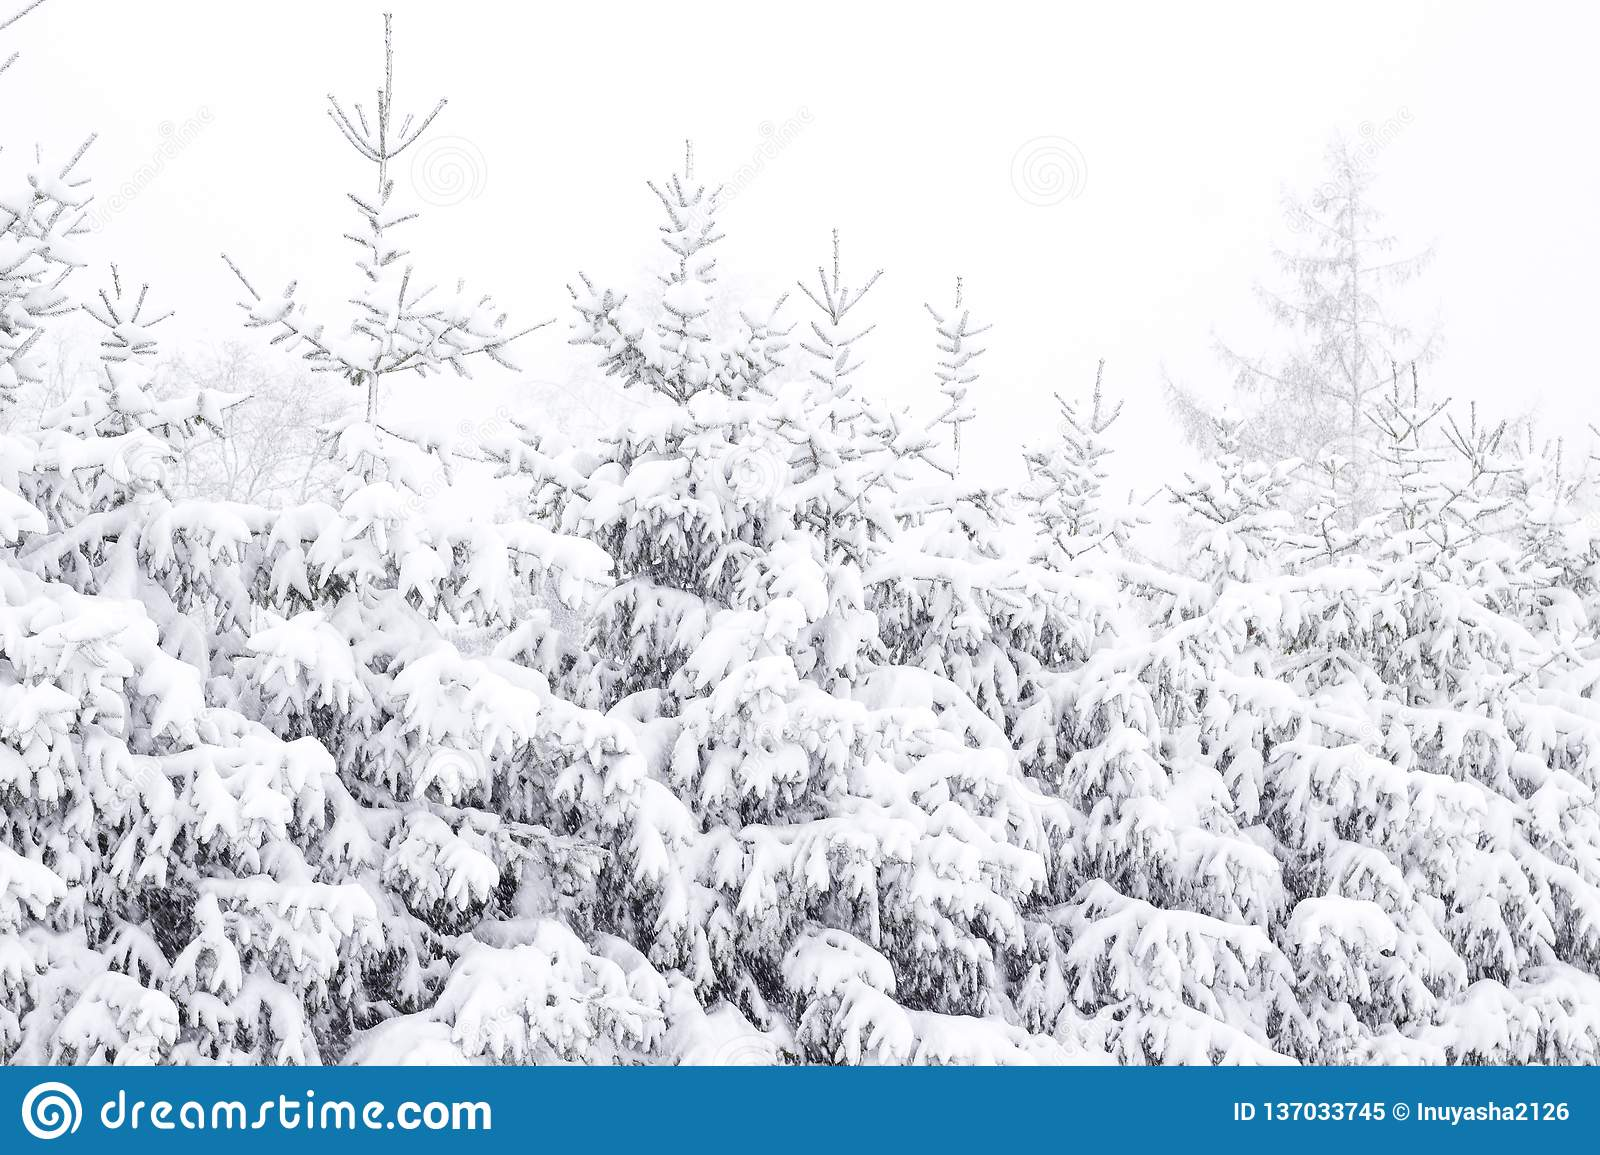 Wonderland Fir trees covered snow Beautiful Winter landscape scene background with snow covered trees Beauty winter backdrop